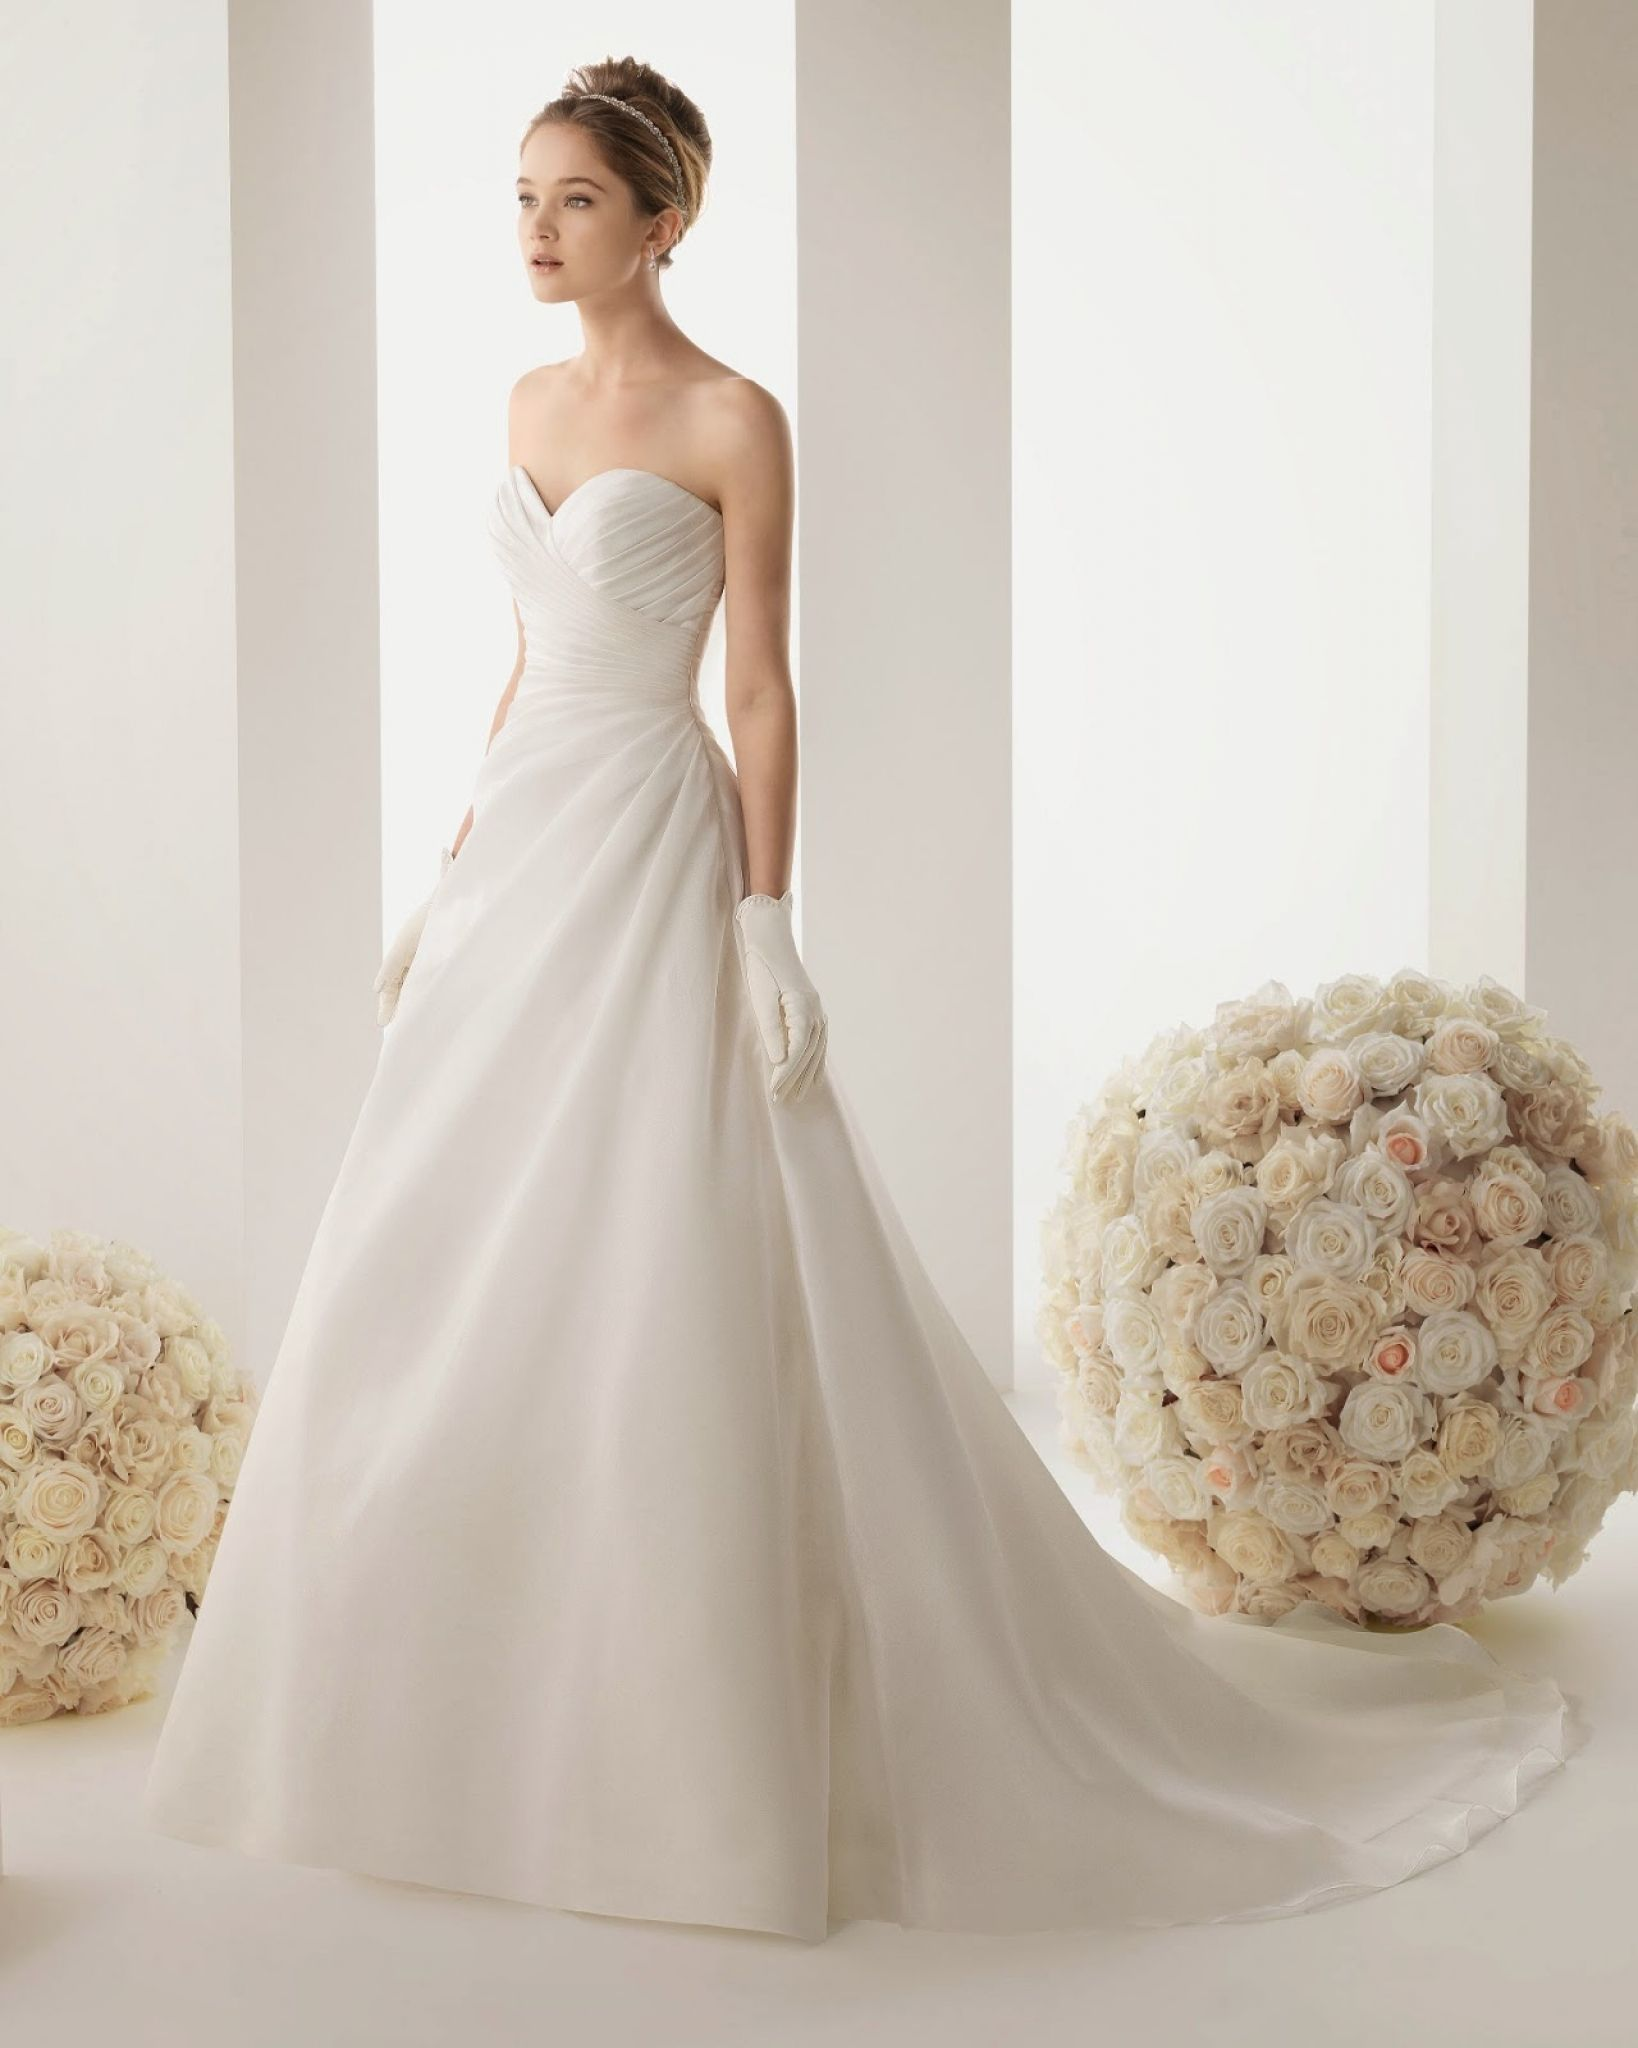 Where can i rent a wedding dress  rent wedding dress nyc  wedding dresses for fall Check more at